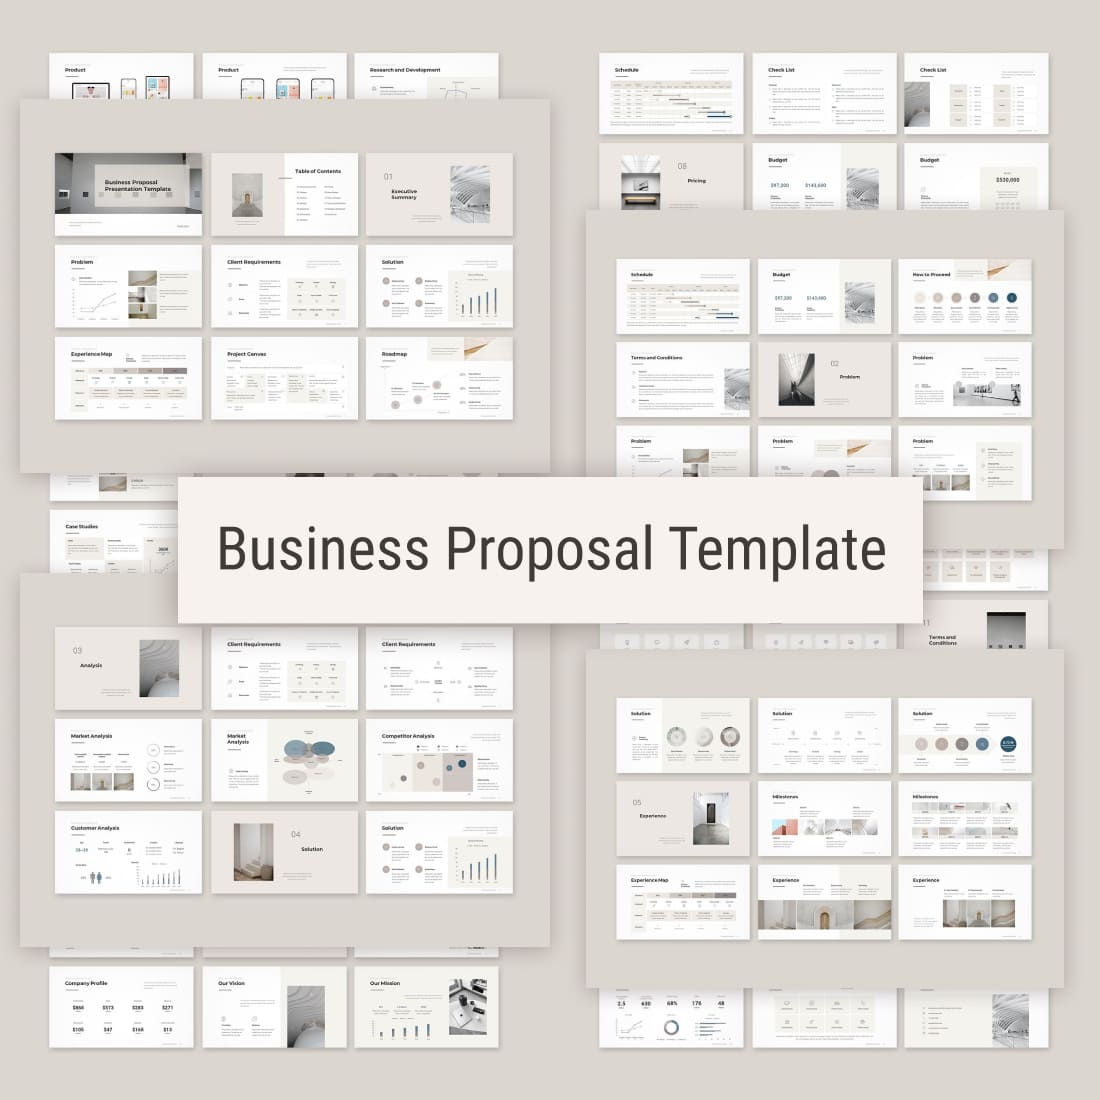 Business Proposal Template 2021.